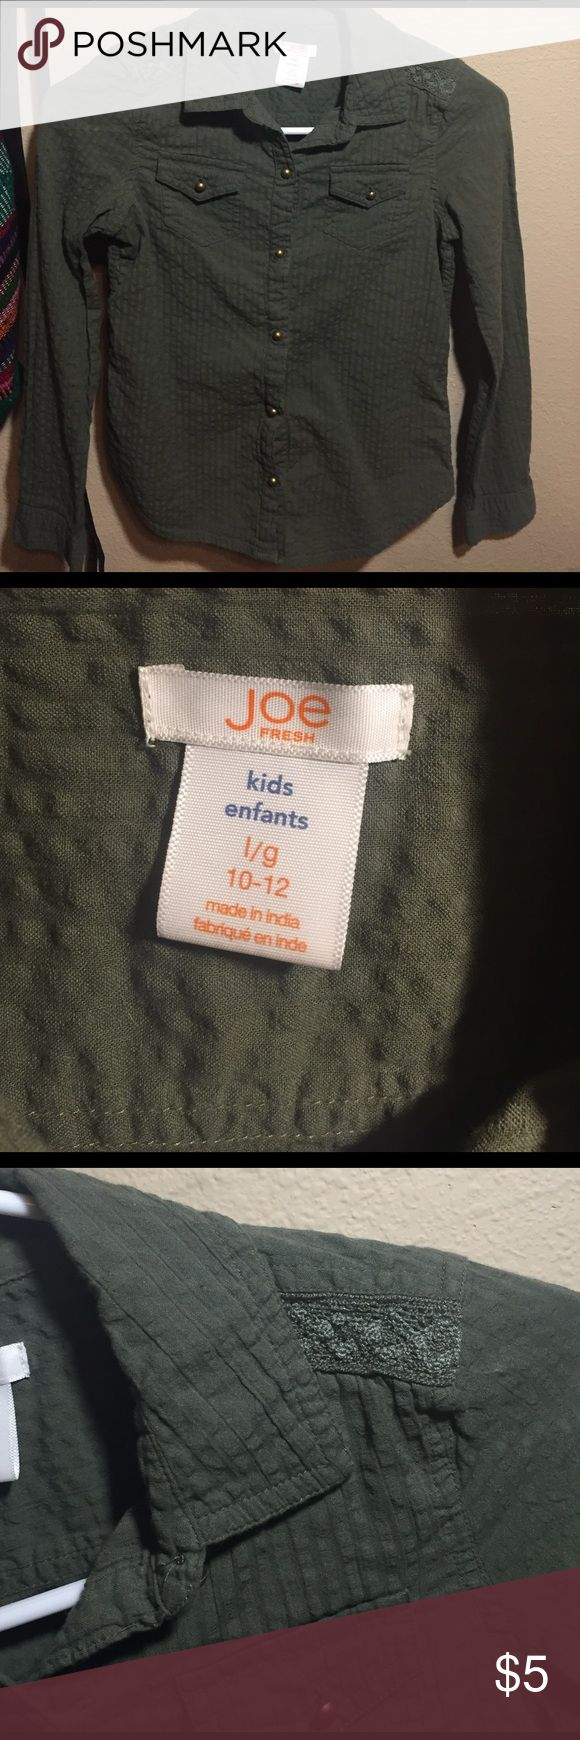 Joe Fresh Army Green Button Down shirt Army Green button down shirt with crochet detailing on shoulders. Excellent condition, only worn a couple of times. Joe Fresh Shirts & Tops Button Down Shirts